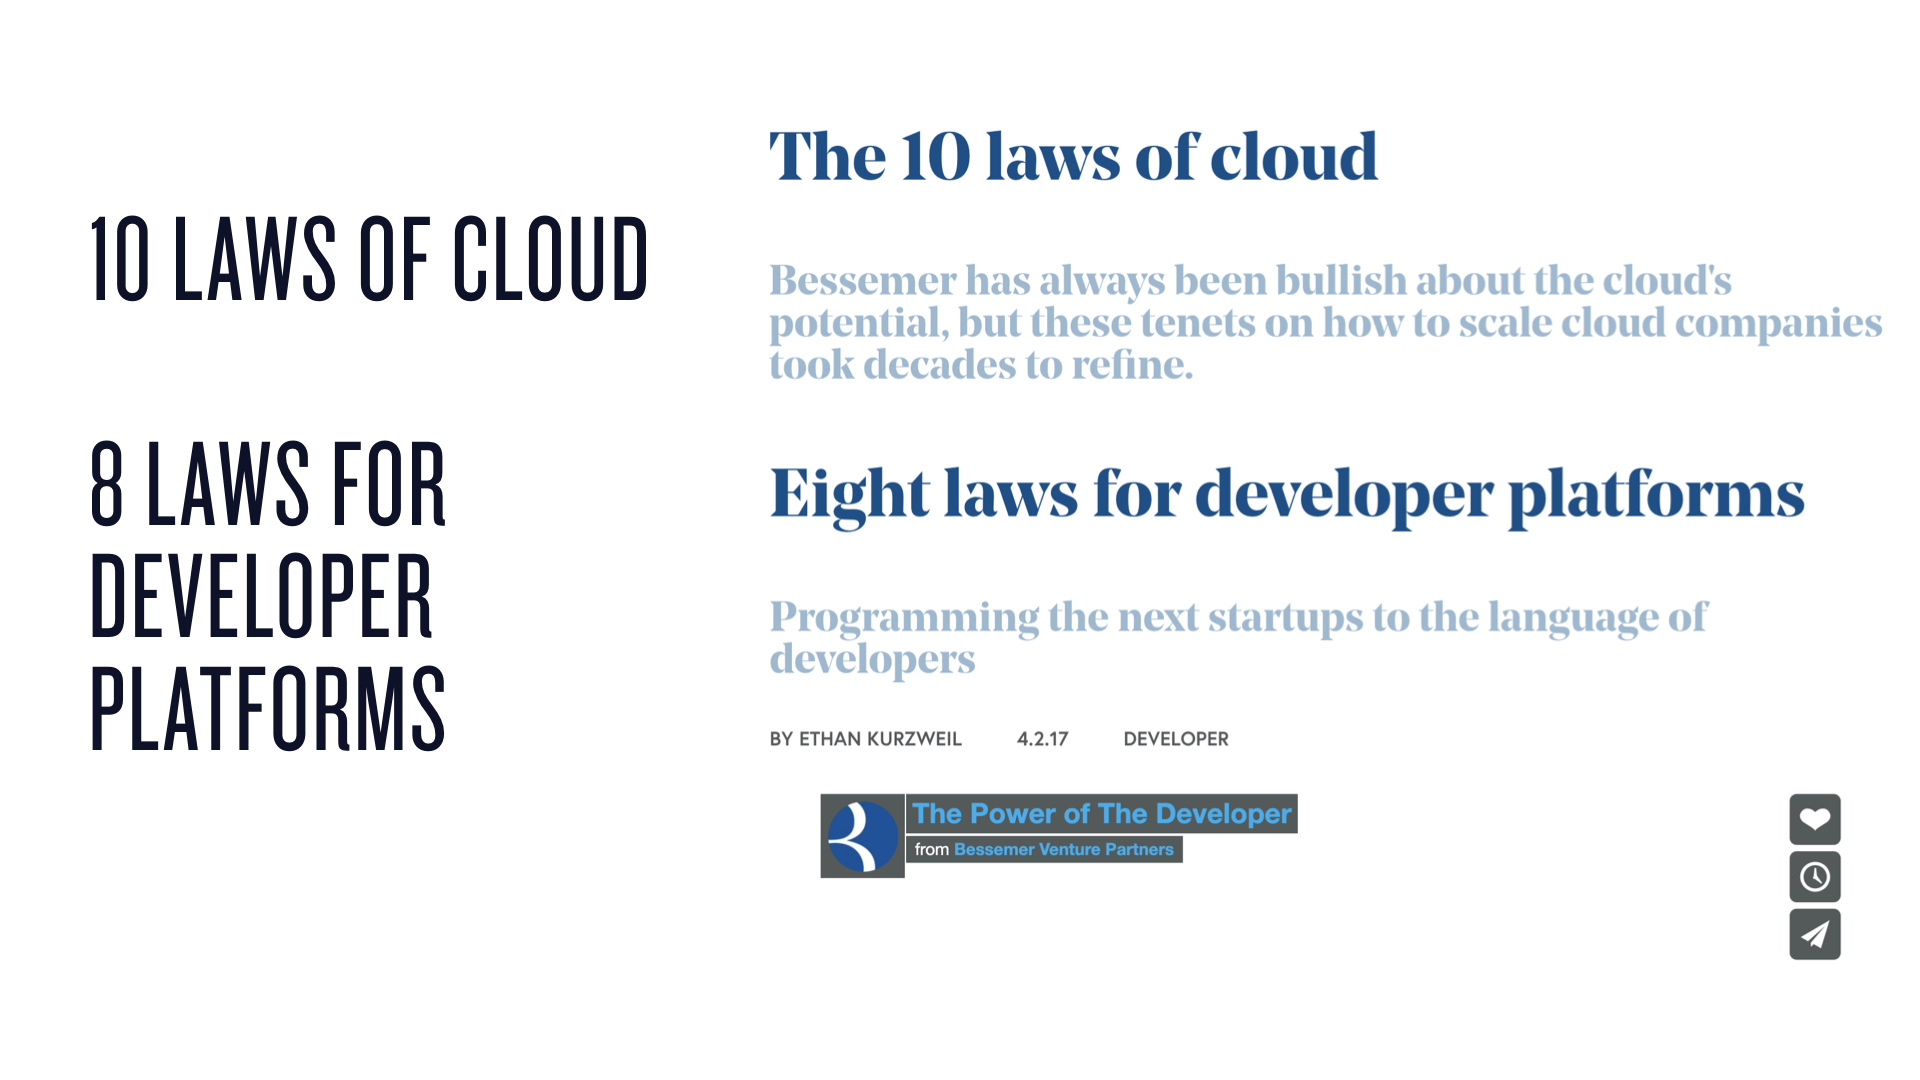 Bessemer's 10 Laws of Cloud Computing and developer platform laws are fantastic foundational reading.